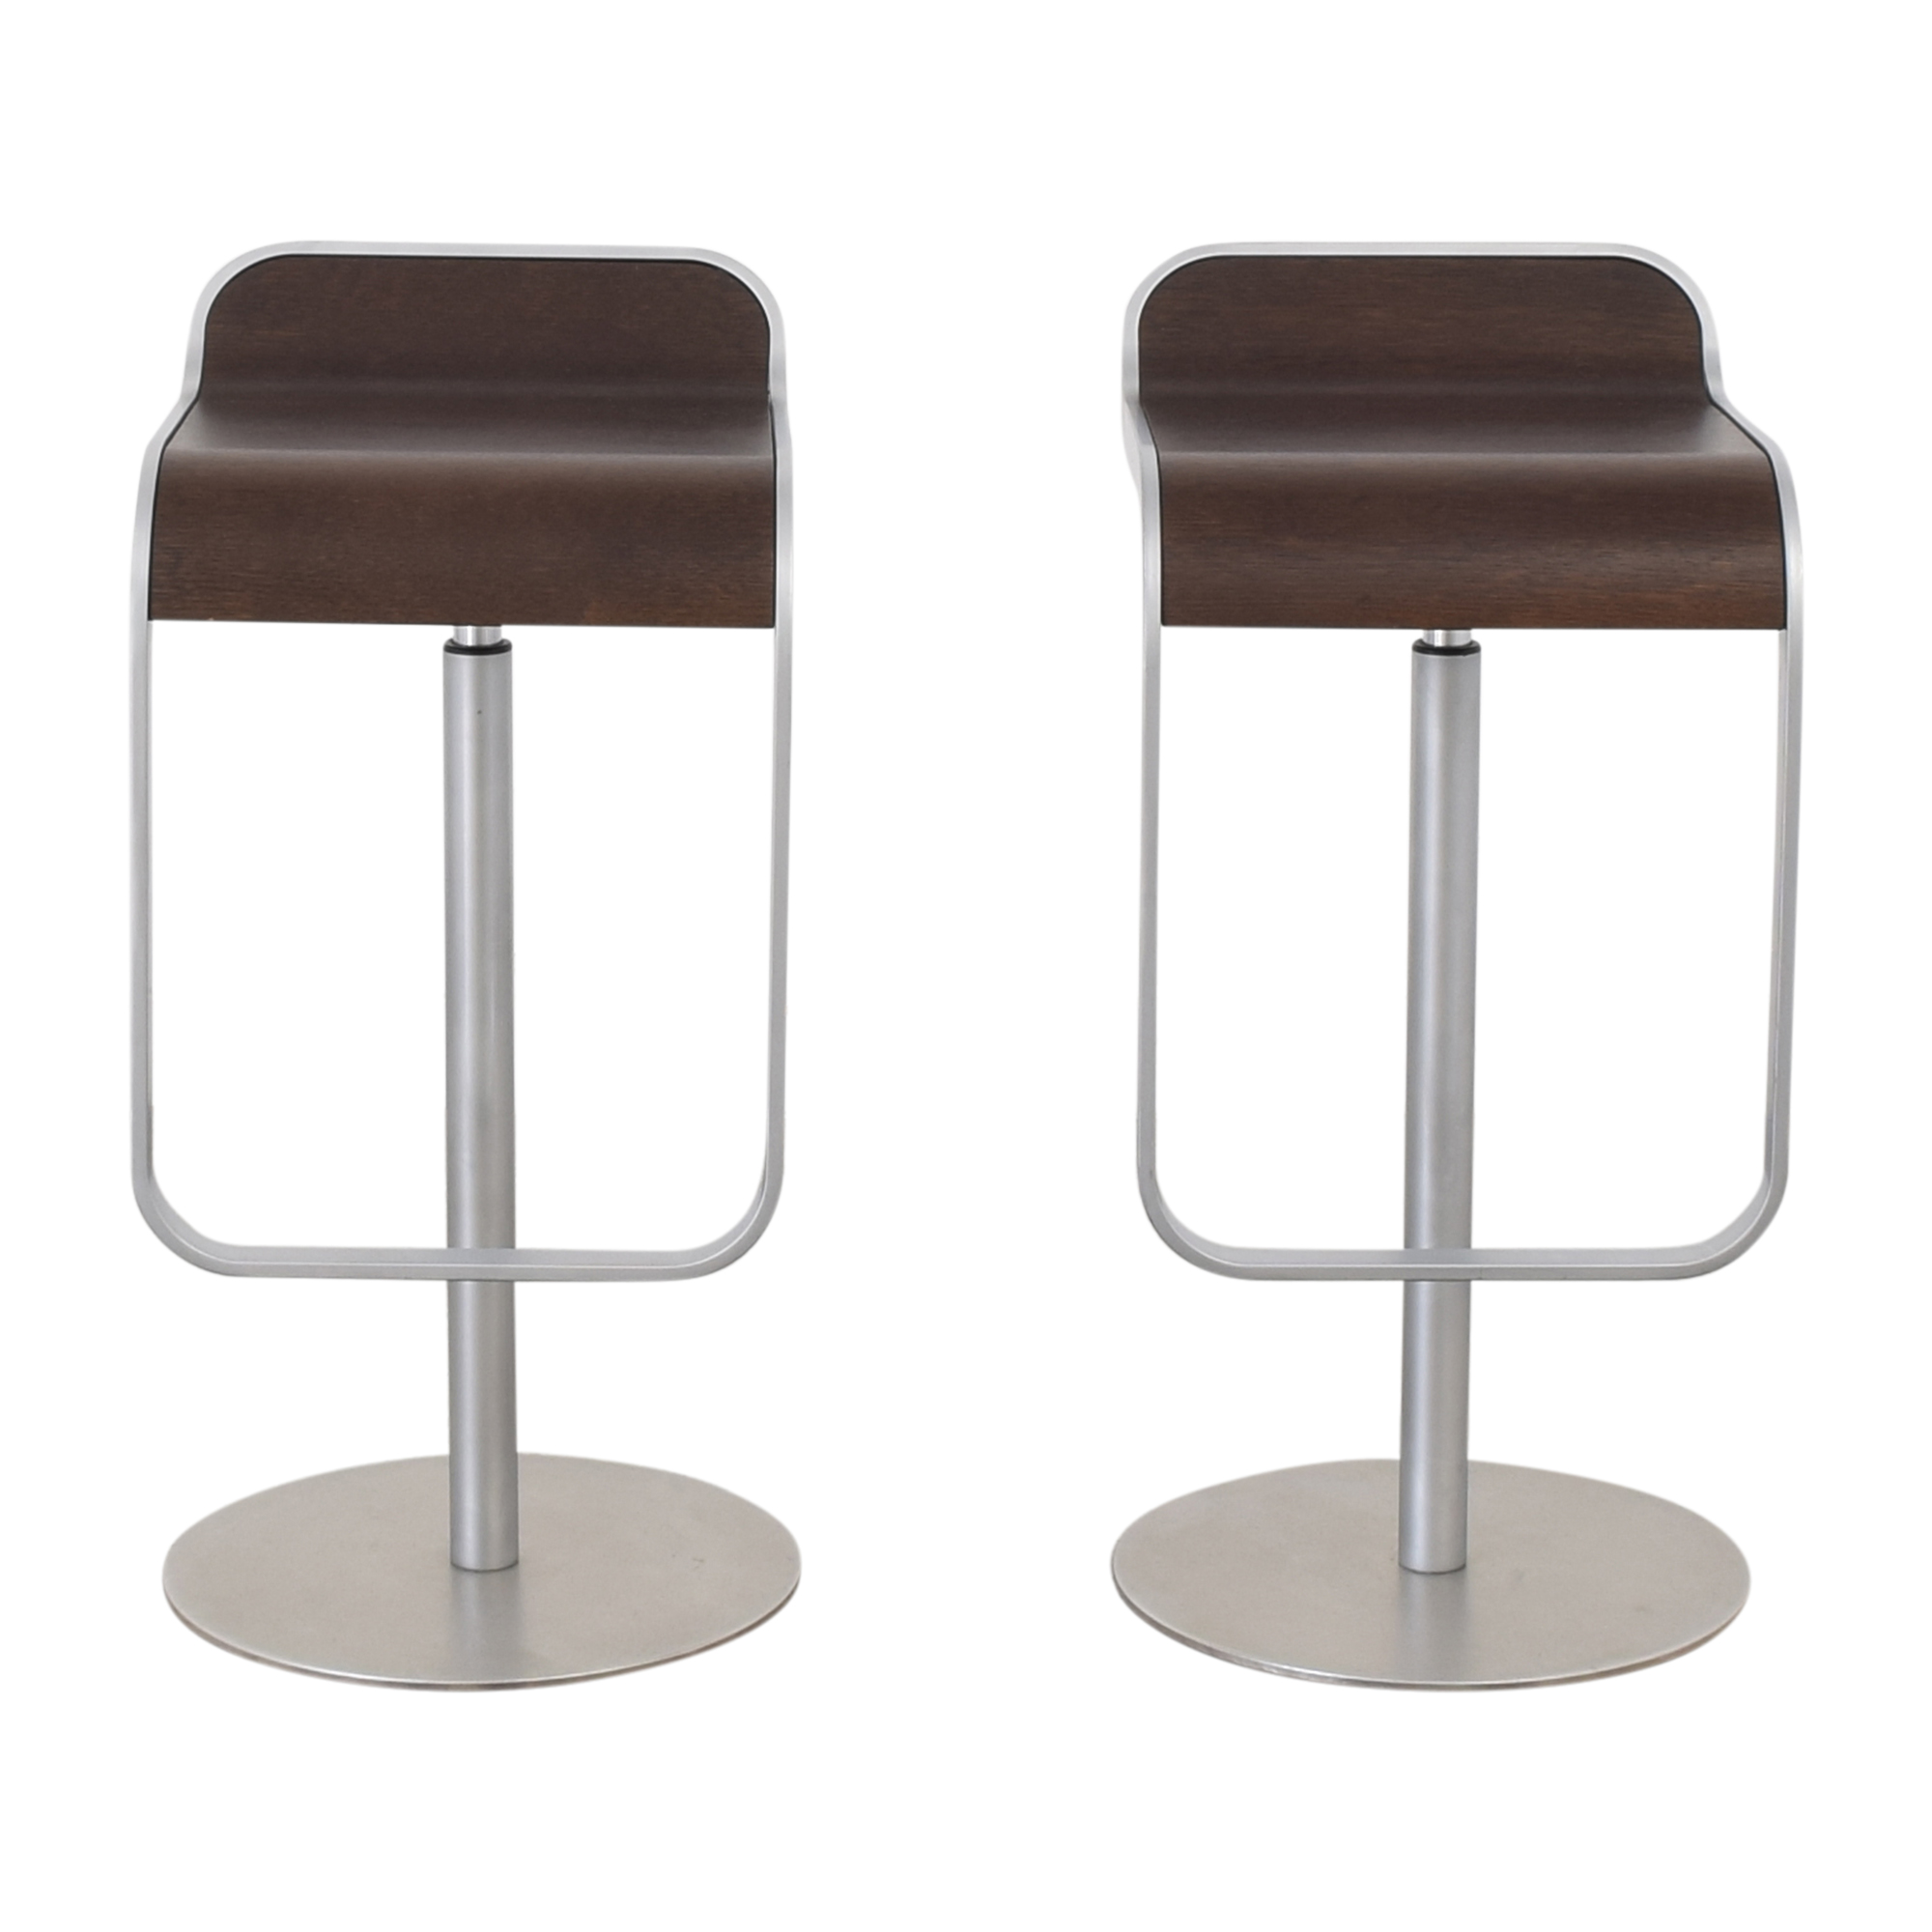 buy Design Within Reach Design Within Reach LEM Piston Stool online